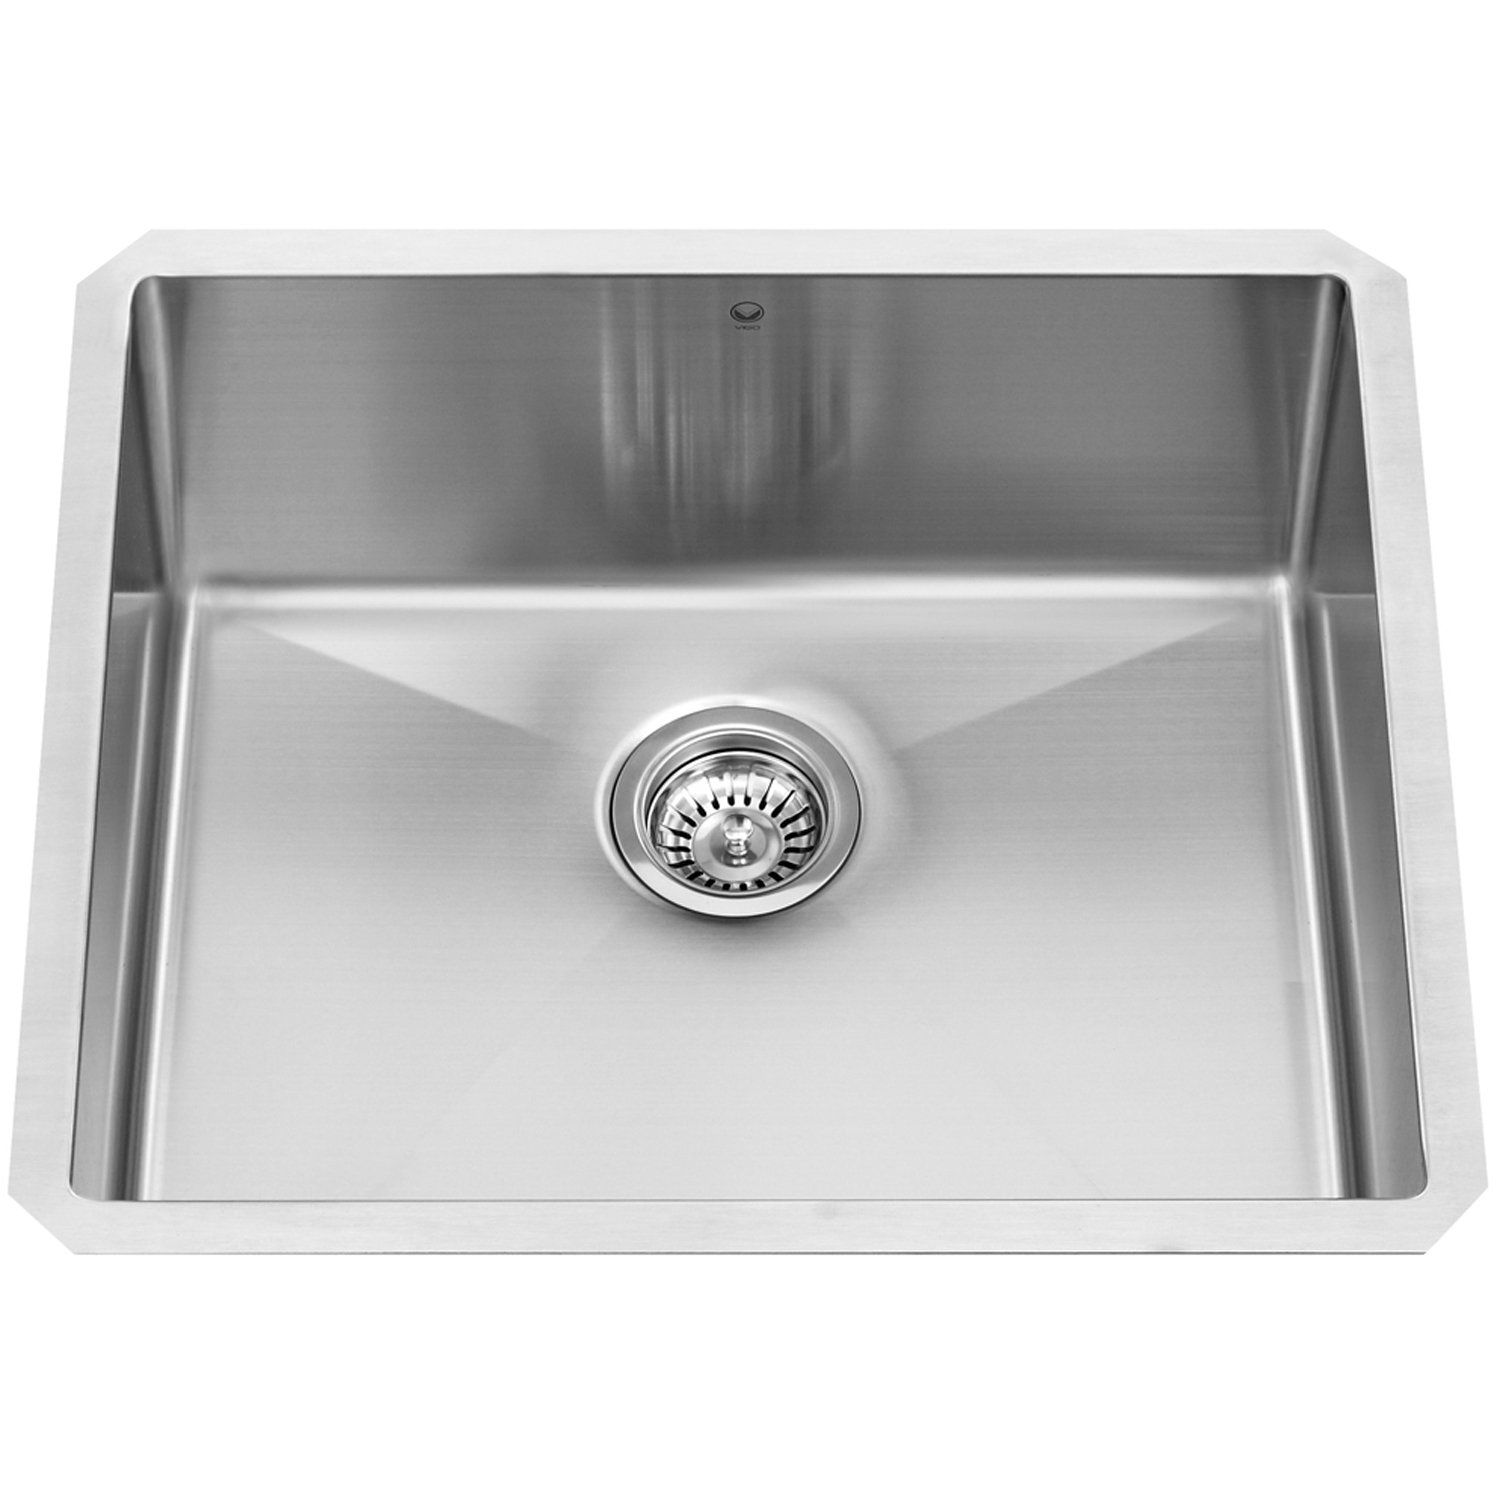 VIGO 23-inch Undermount Stainless Steel 16 Gauge Stainless Steel Single Kitchen Sink with Rounded Edge